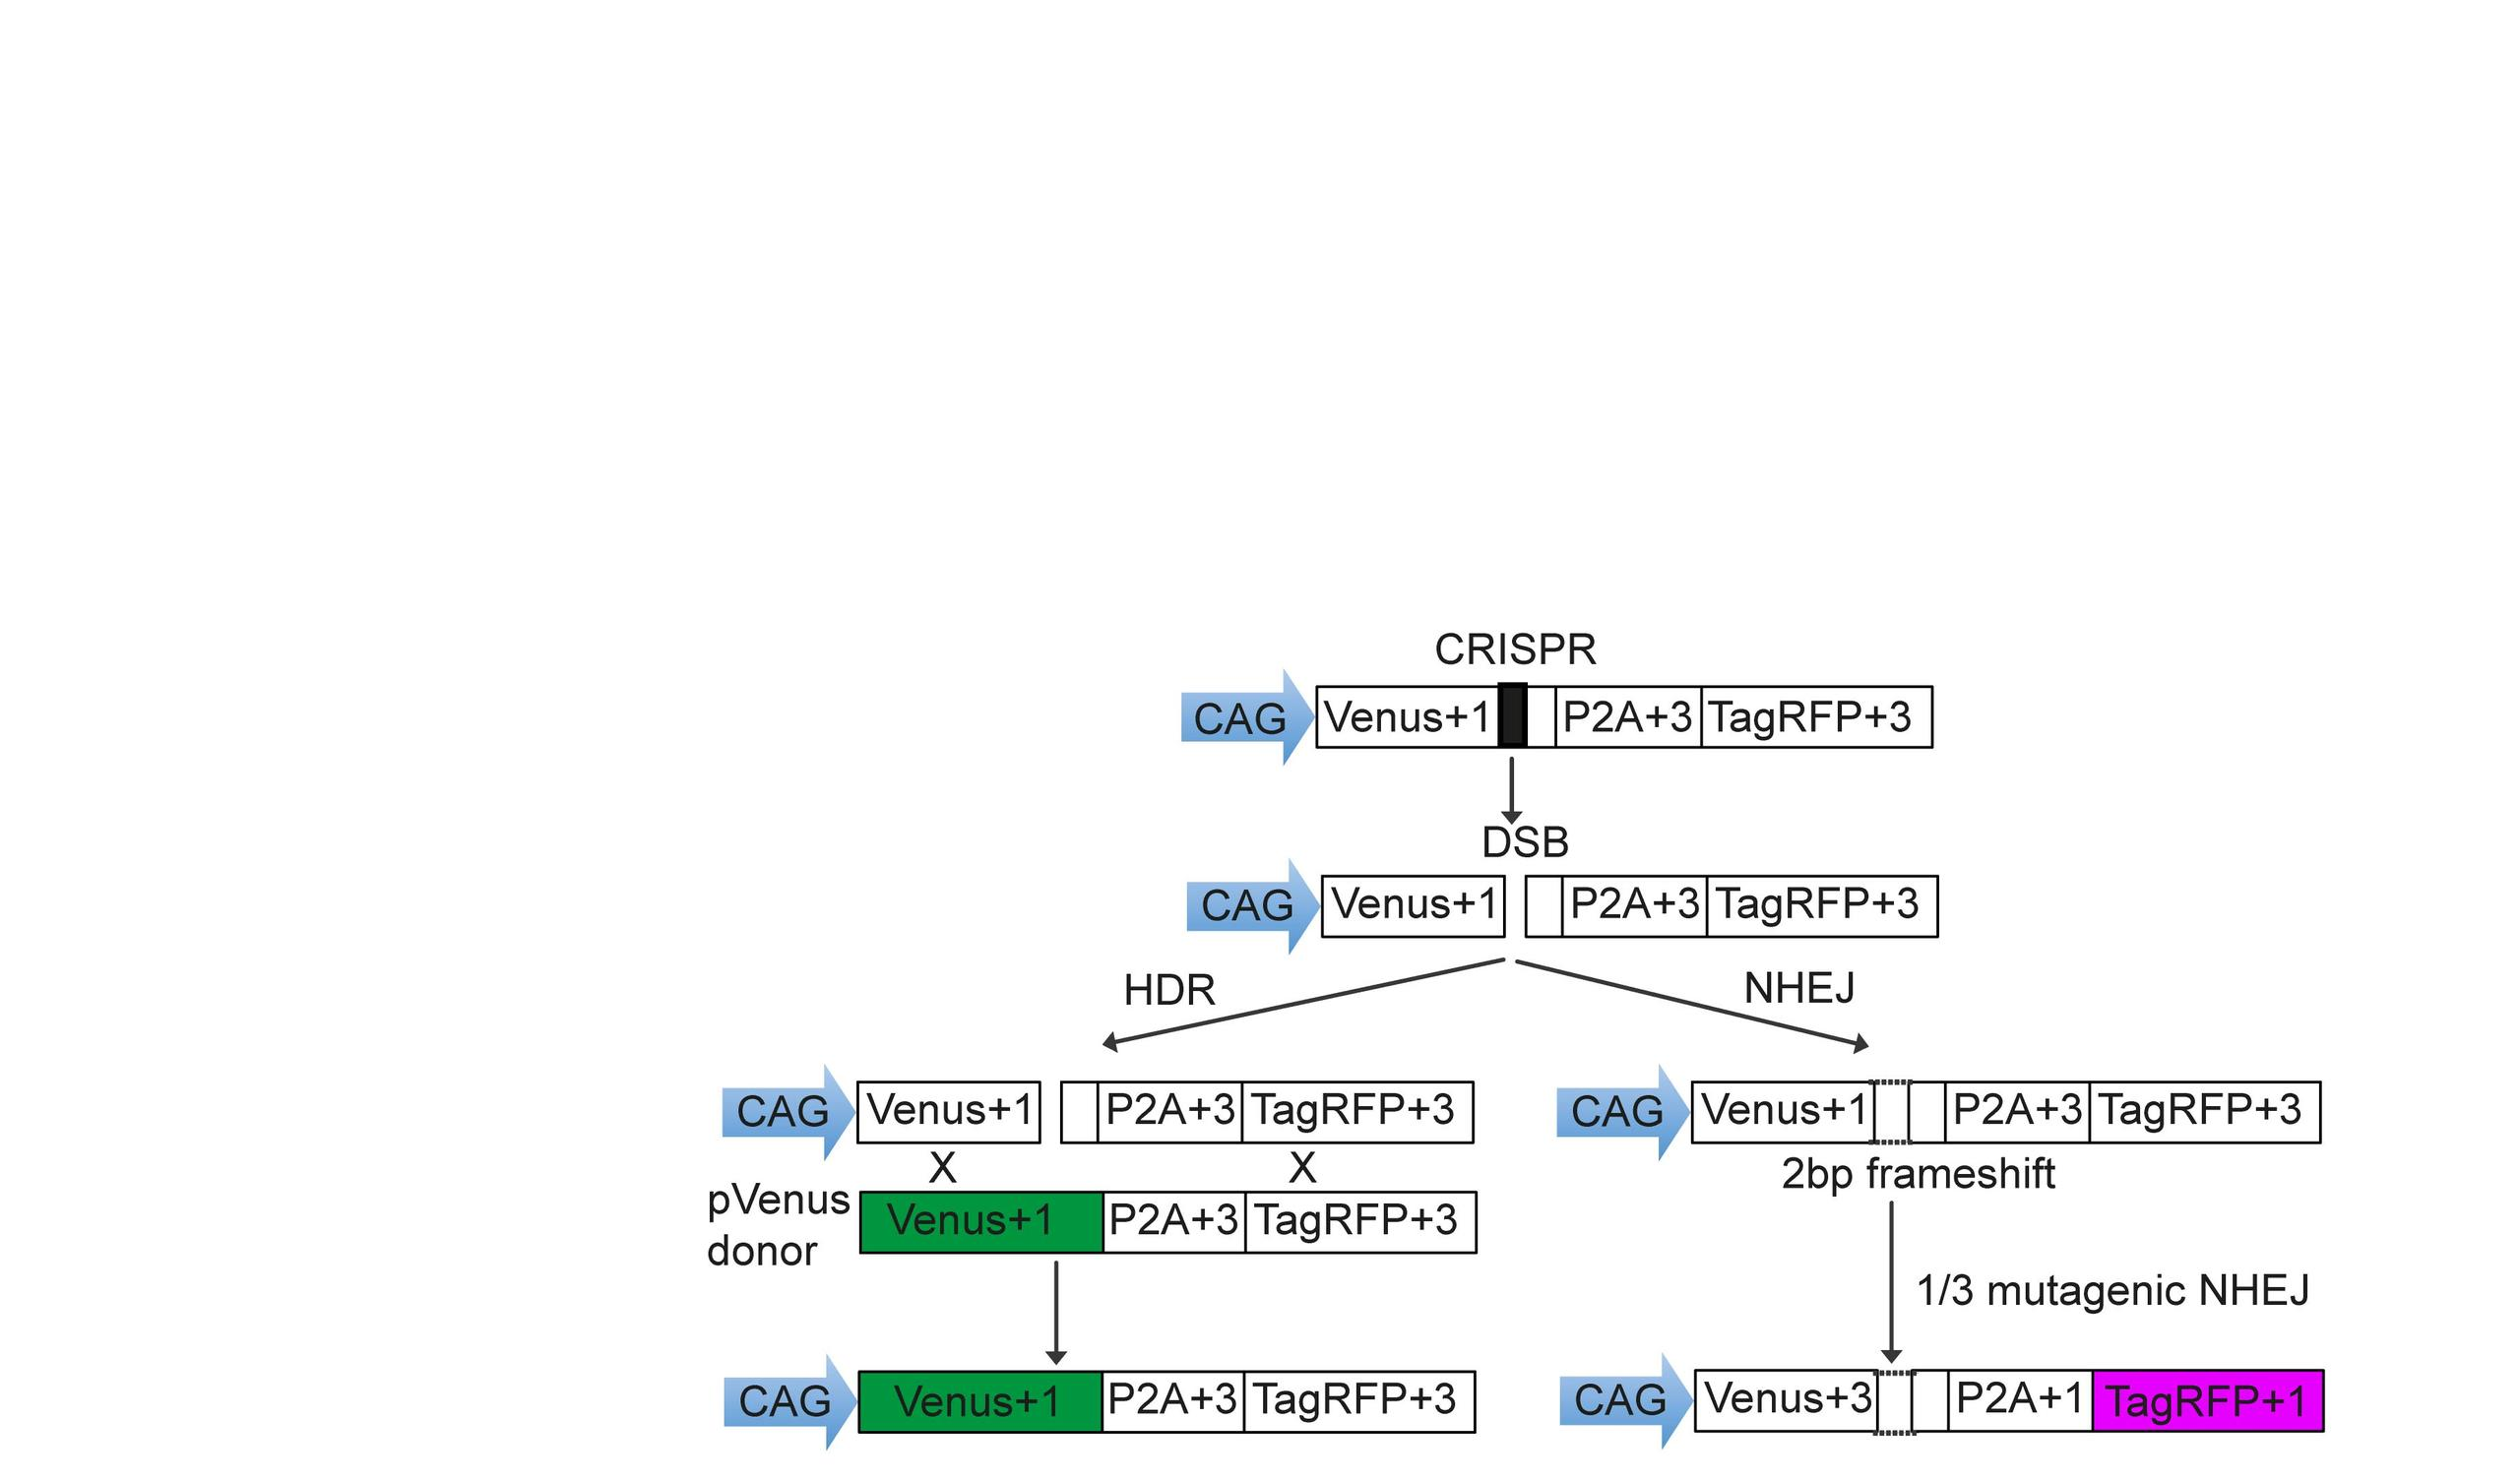 Perfecting The Tools To Rewrite Genomes Max Delbrck Center For Figure 1 Block Diagram Click On Image Enlarge These Schemes Give A Recipe Building Stoplight Reporter That Scientists Inserted Into Cells Using Crispr Cas Method